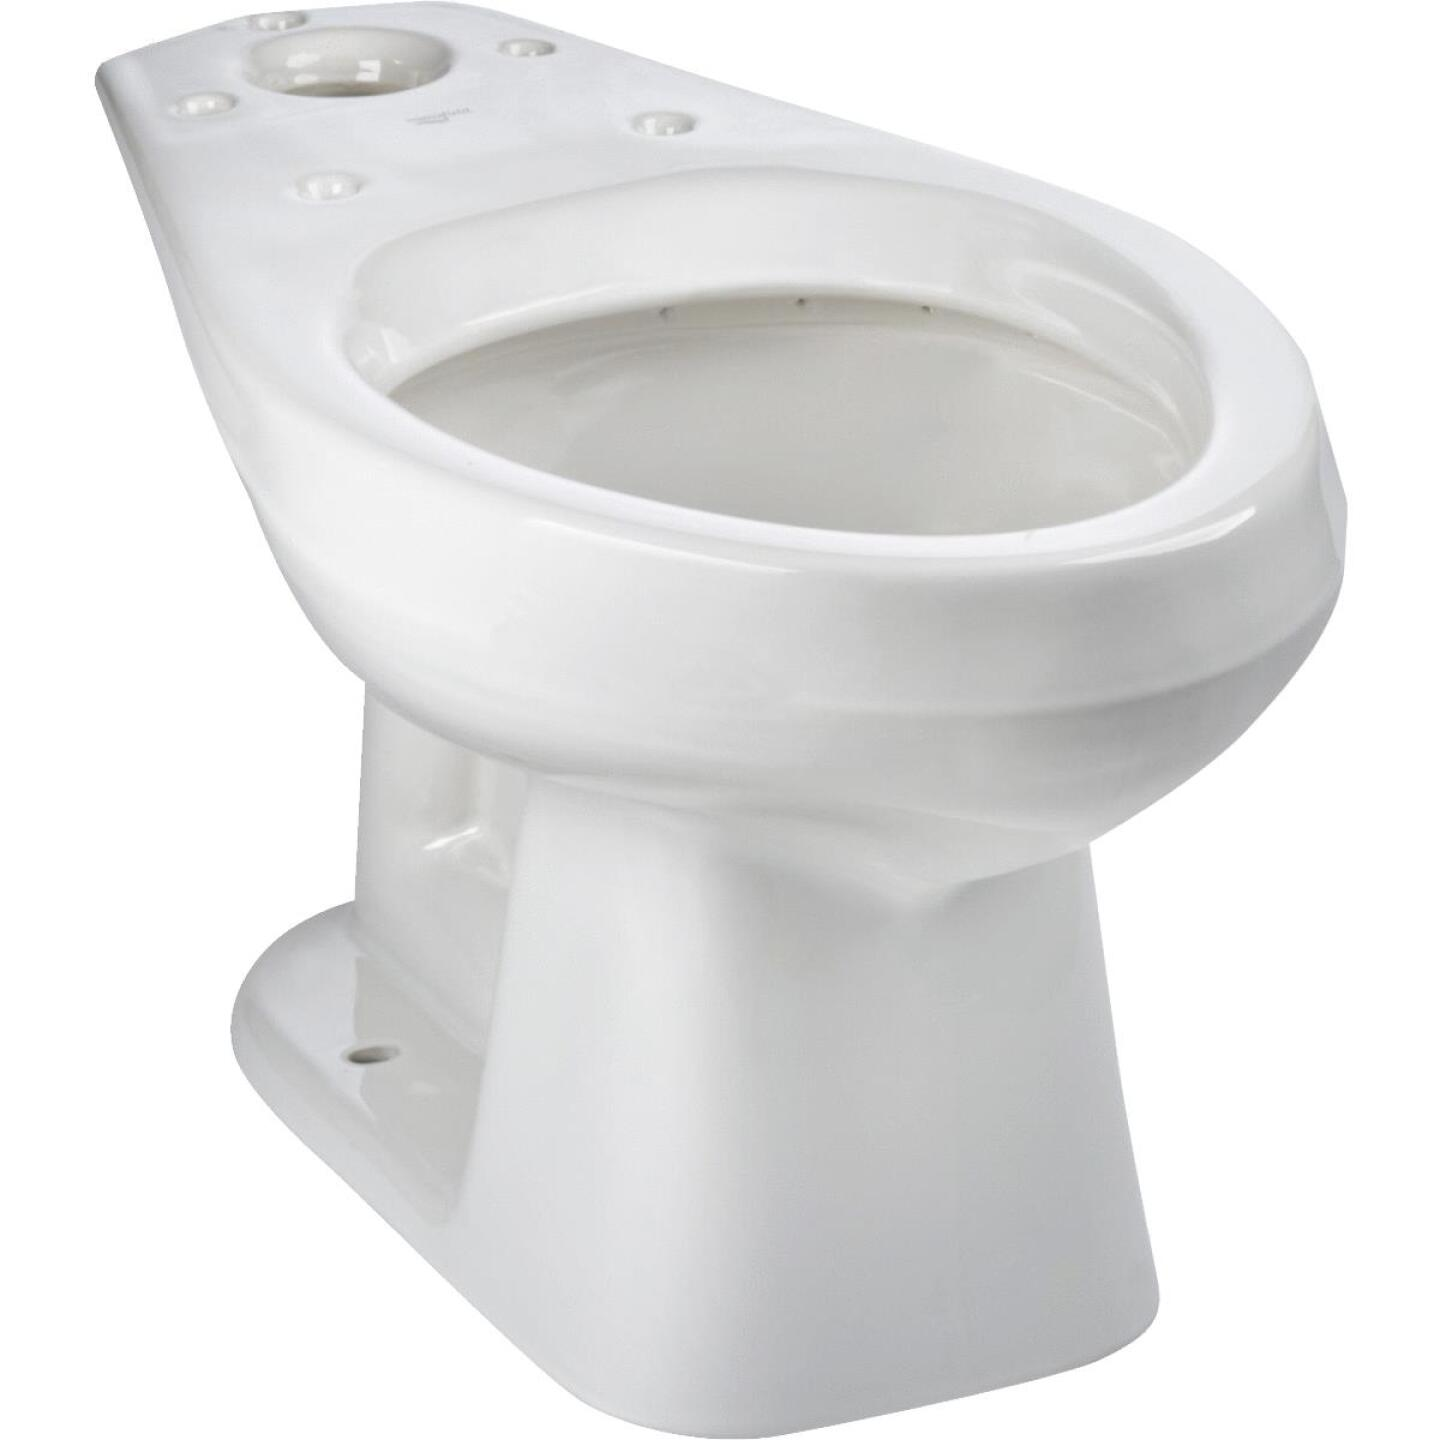 Mansfield Alto White Elongated 14-3/4 In. Toilet Bowl Image 1